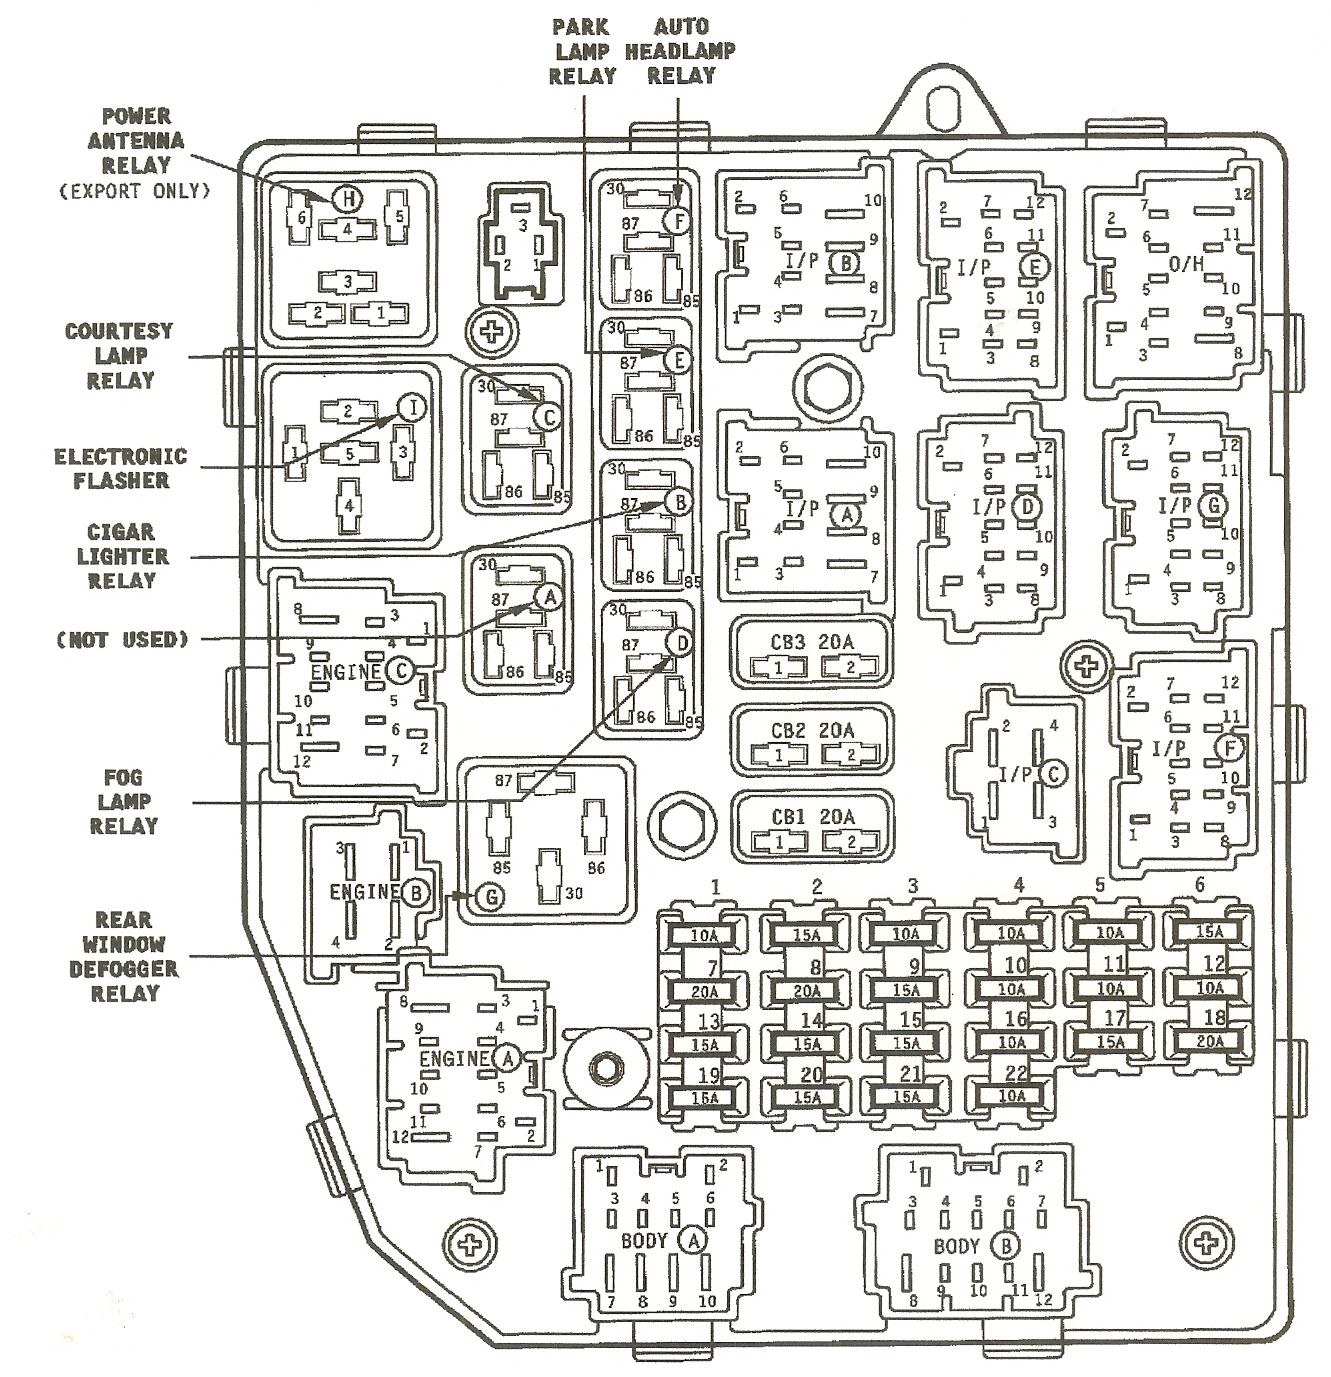 fuse box 96 jeep grand cherokee just wiring diagram 1996 jeep grand cherokee laredo fuse box 1996 jeep laredo fuse box [ 1331 x 1377 Pixel ]